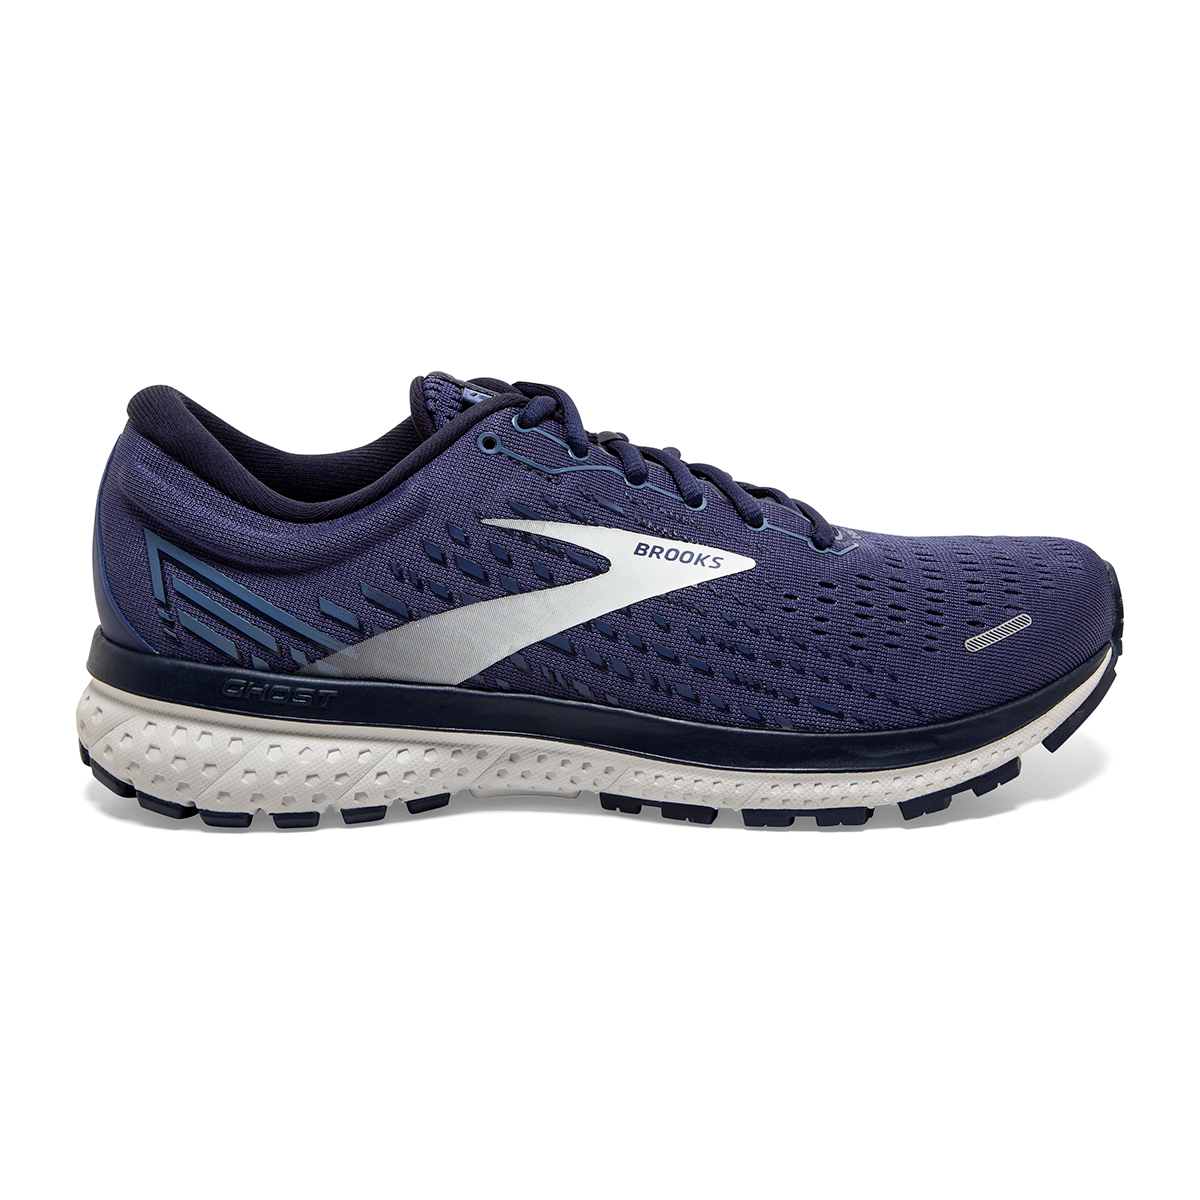 Men's Brooks Ghost 13 Running Shoe - Color: Deep Cobalt/Grey - Size: 7 - Width: Regular, Deep Cobalt/Grey, large, image 1